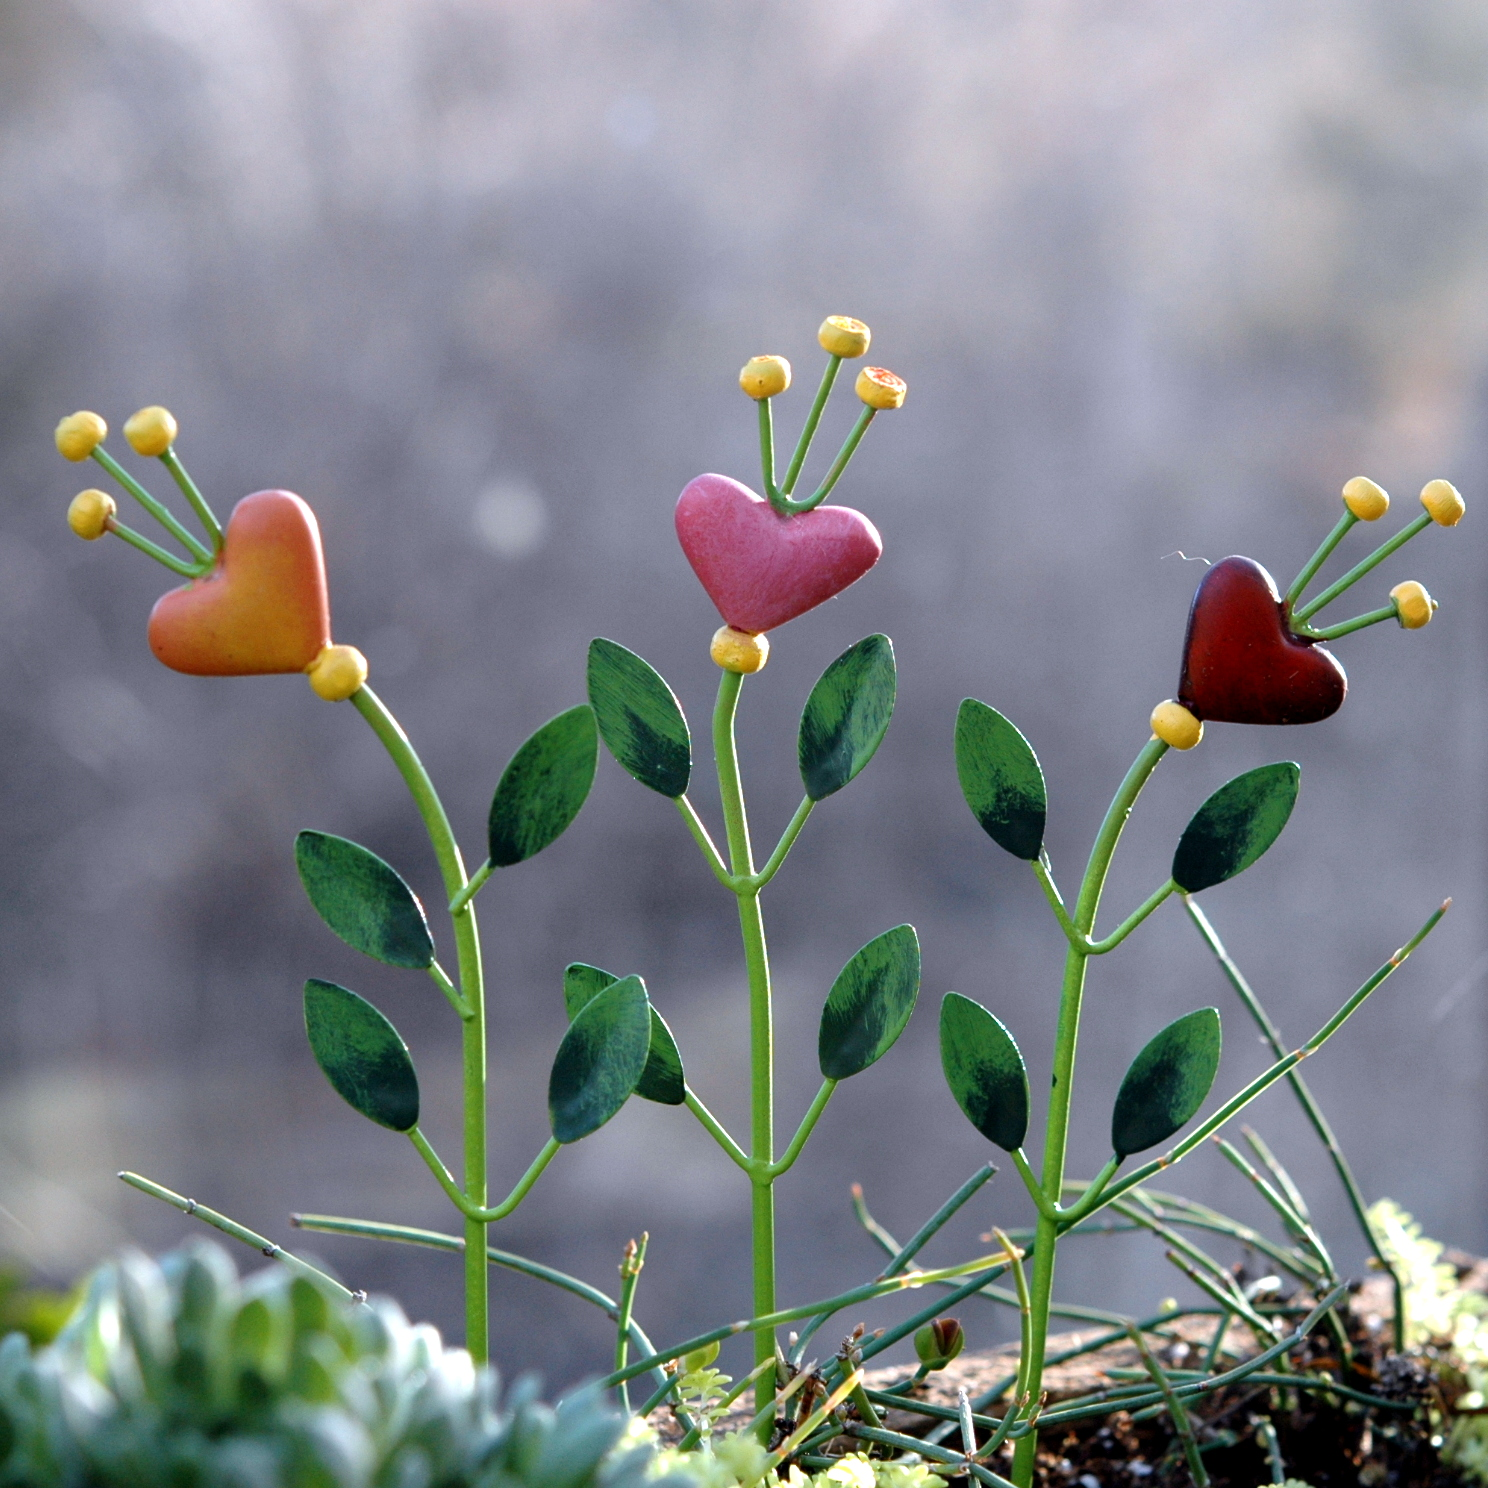 Miniature Merriment Heart Flower Picks